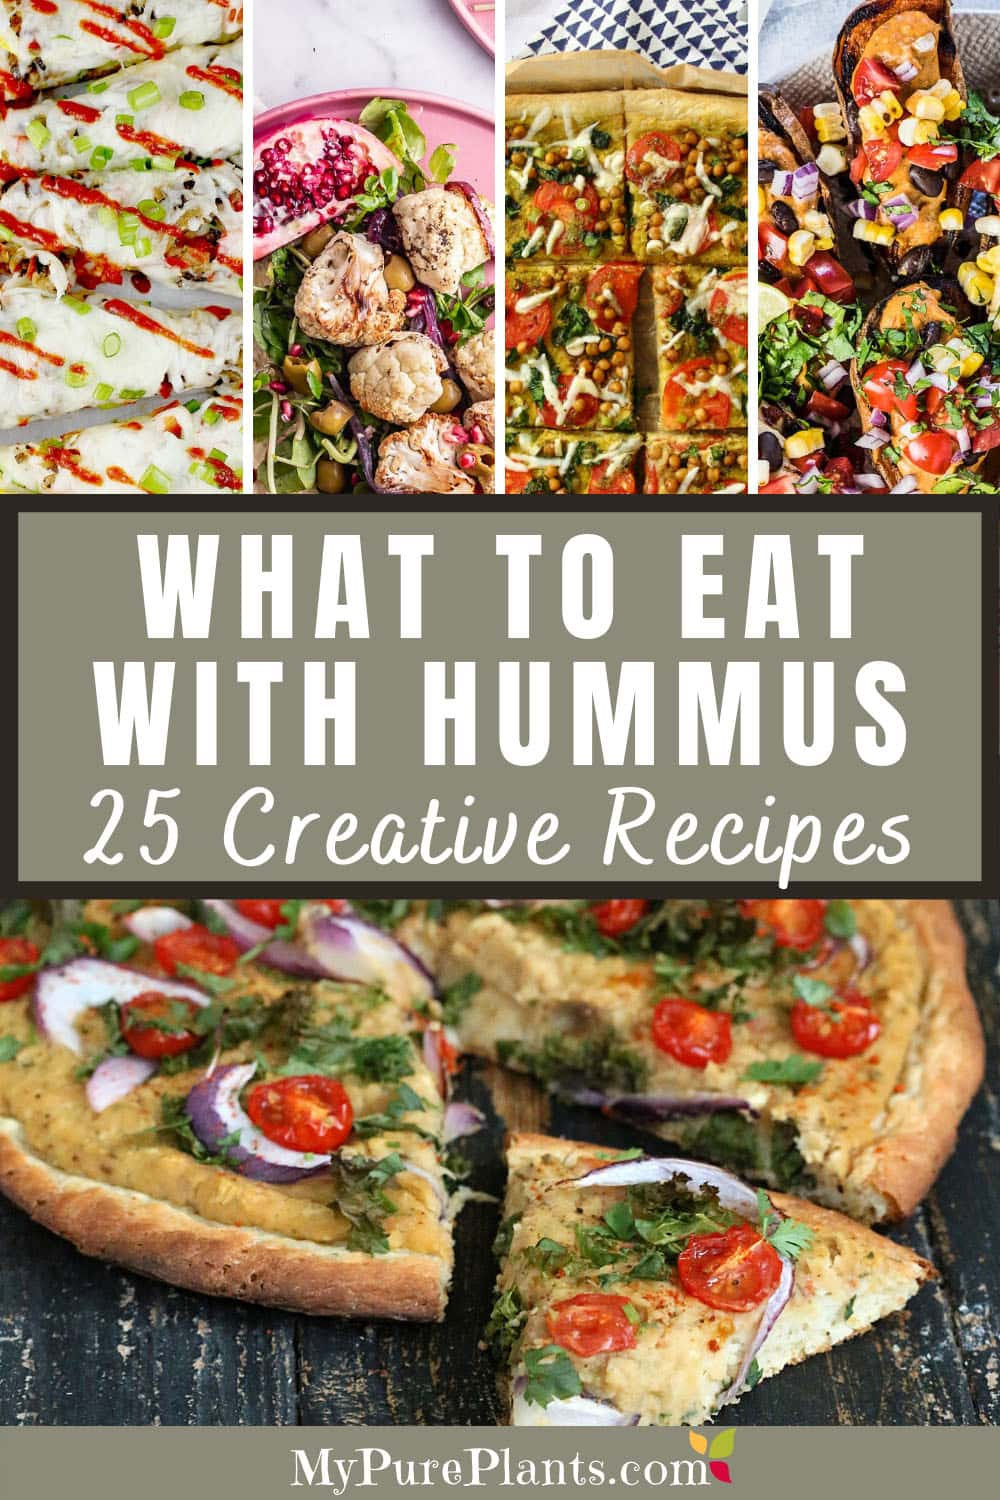 What to eat with hummus collage with different recipes